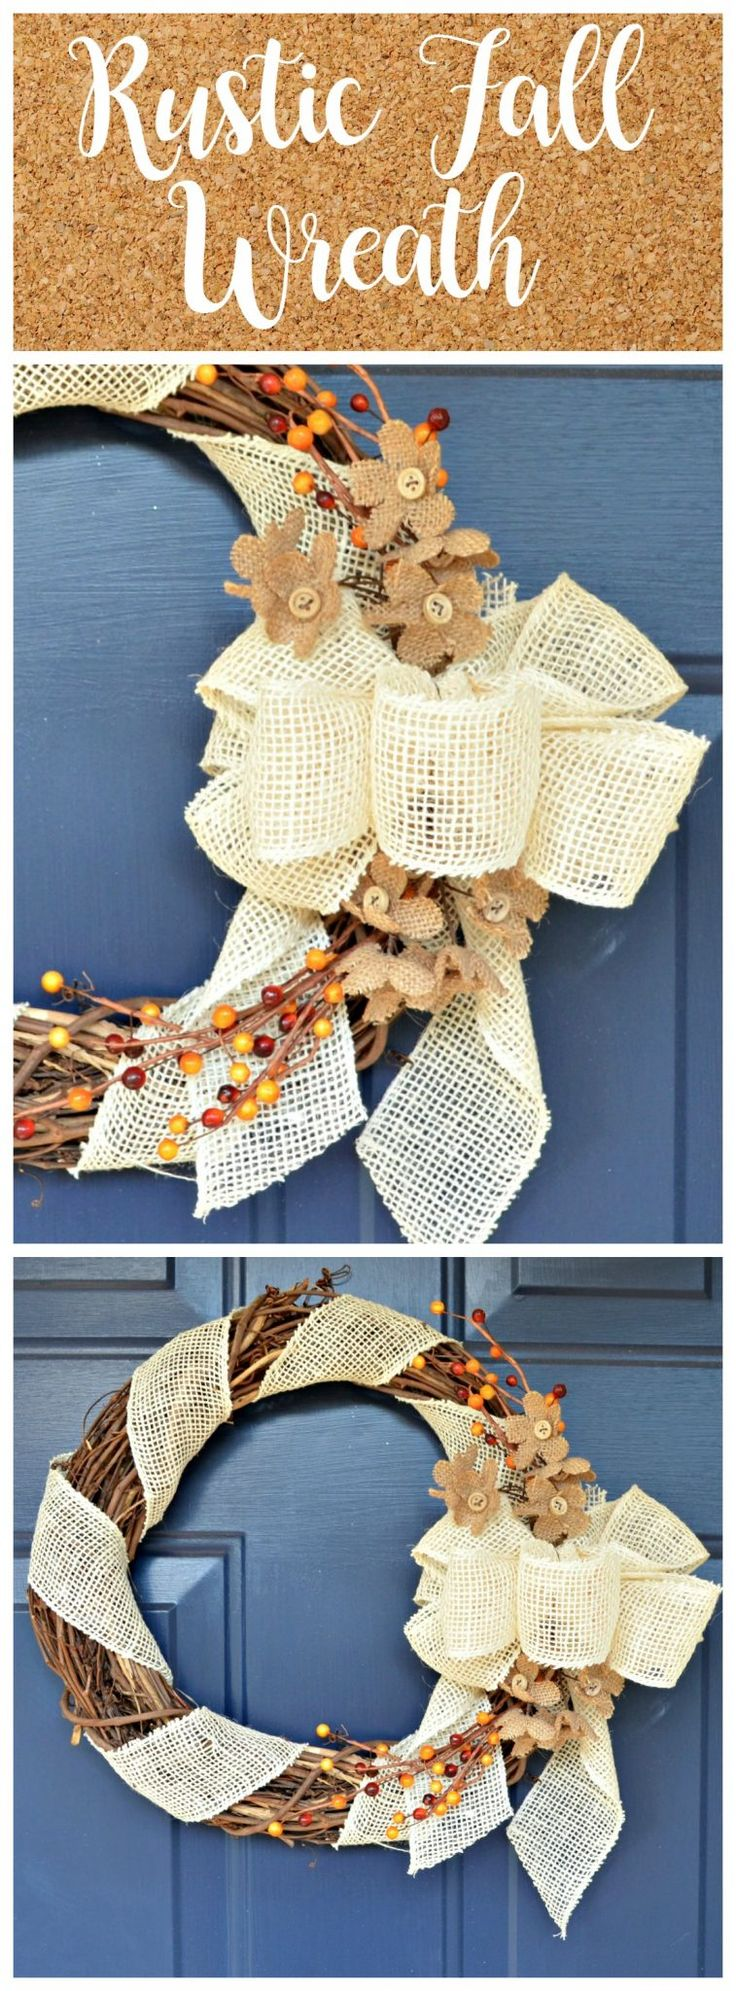 Simple but stunning Rustic Fall Wreath DIY by One Artsy Mama. Click to see the Tutorial